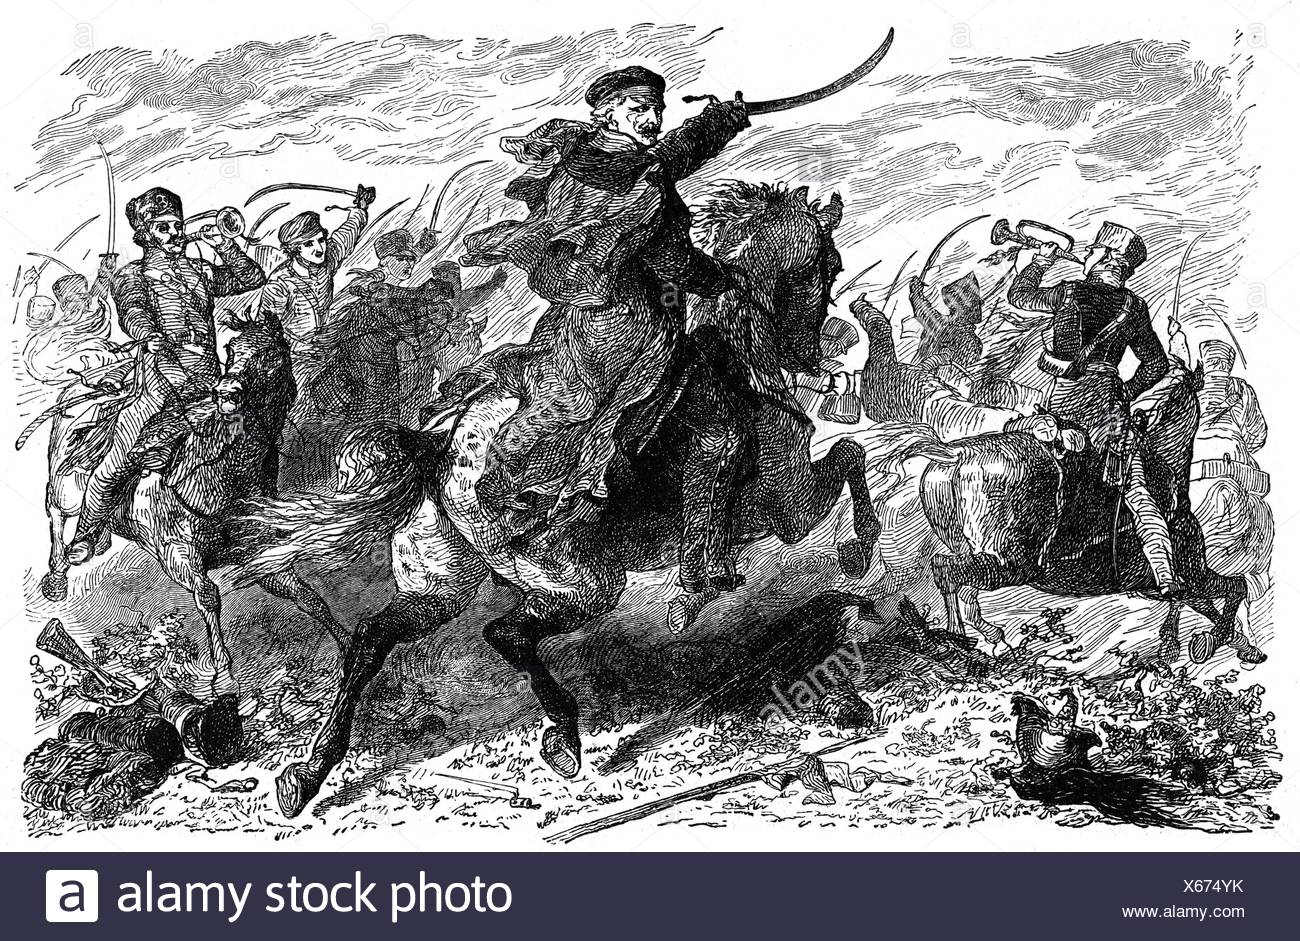 War of the Seventh Coalition 1815, Battle of Ligny, 16.6.1815, the Prussian army under field marshal Gebhard Leberecht von Bluecher in combat, wood engraving, late 19th century, Additional-Rights-Clearences-NA - Stock Image